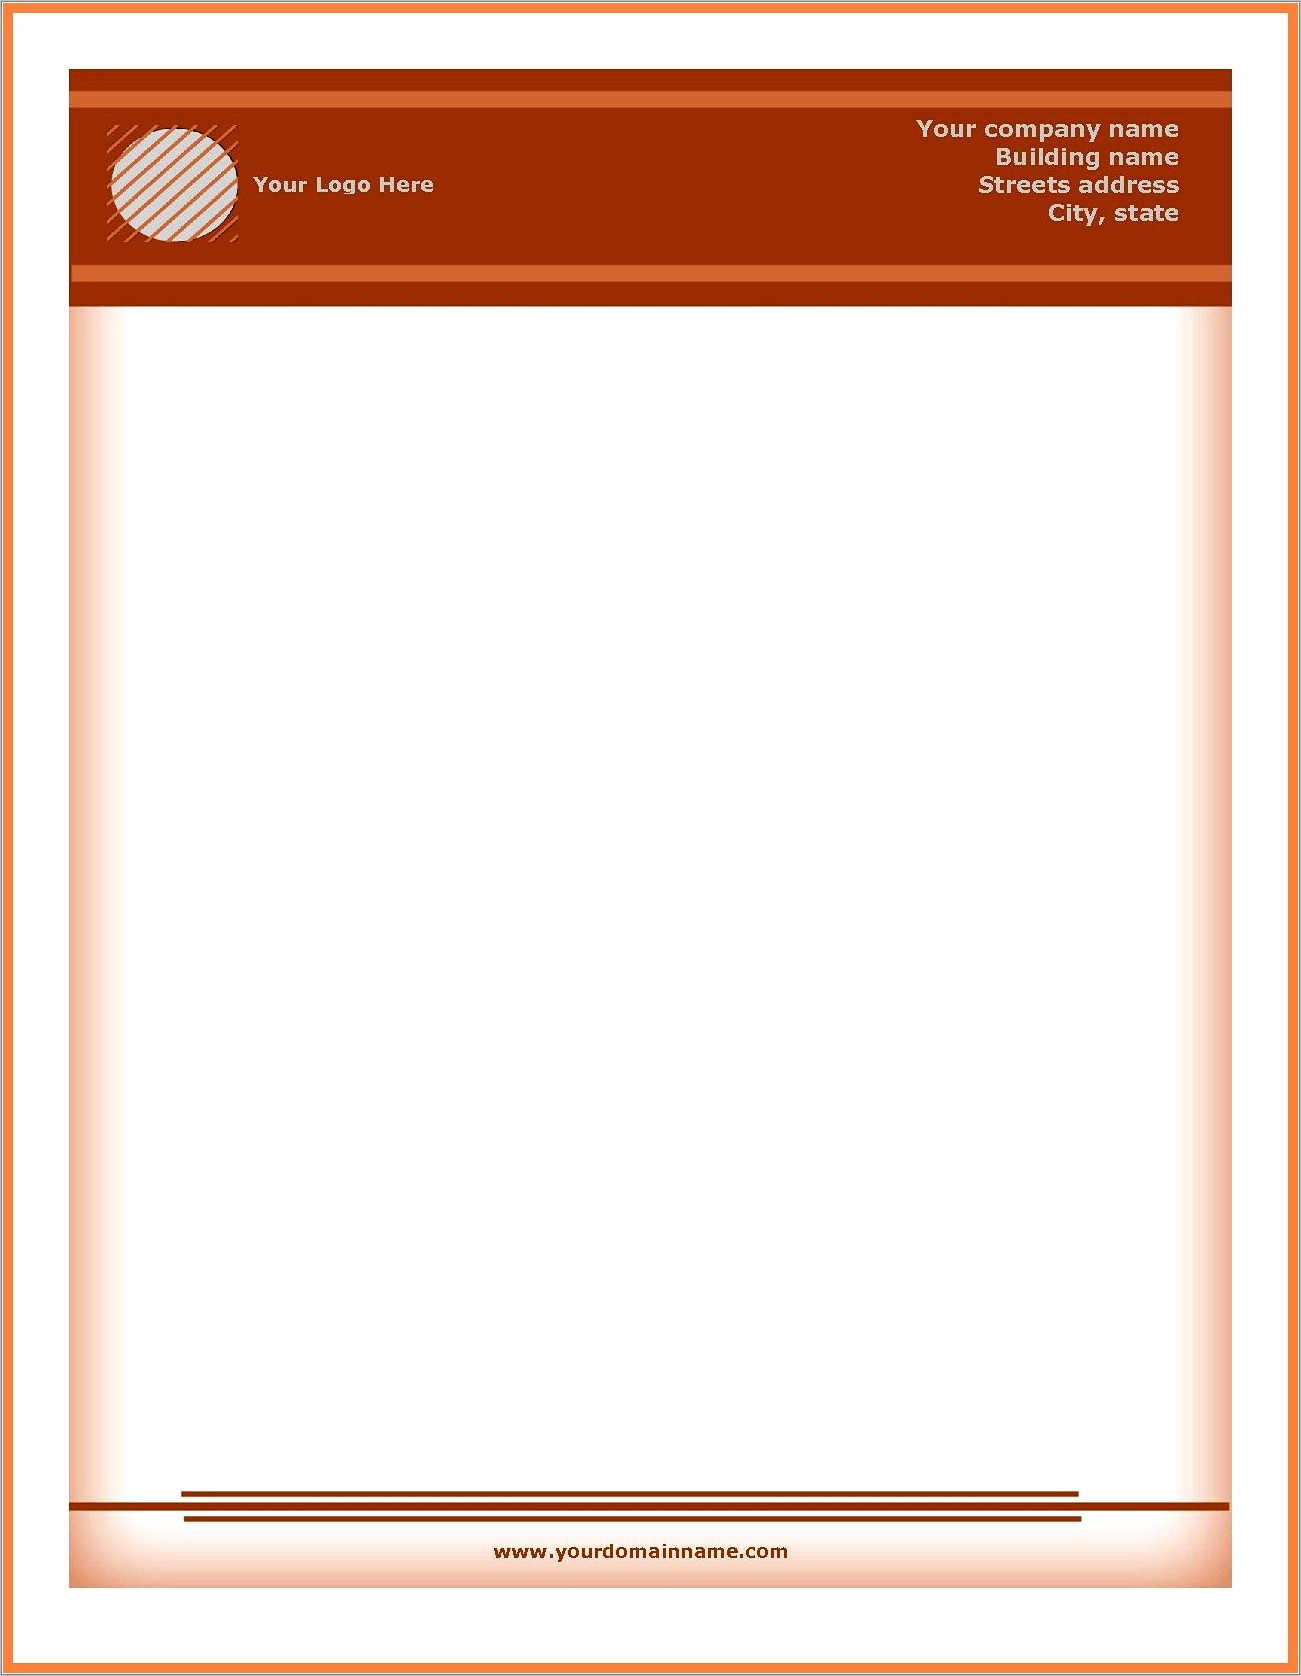 Company Letterhead Template Word Free Download